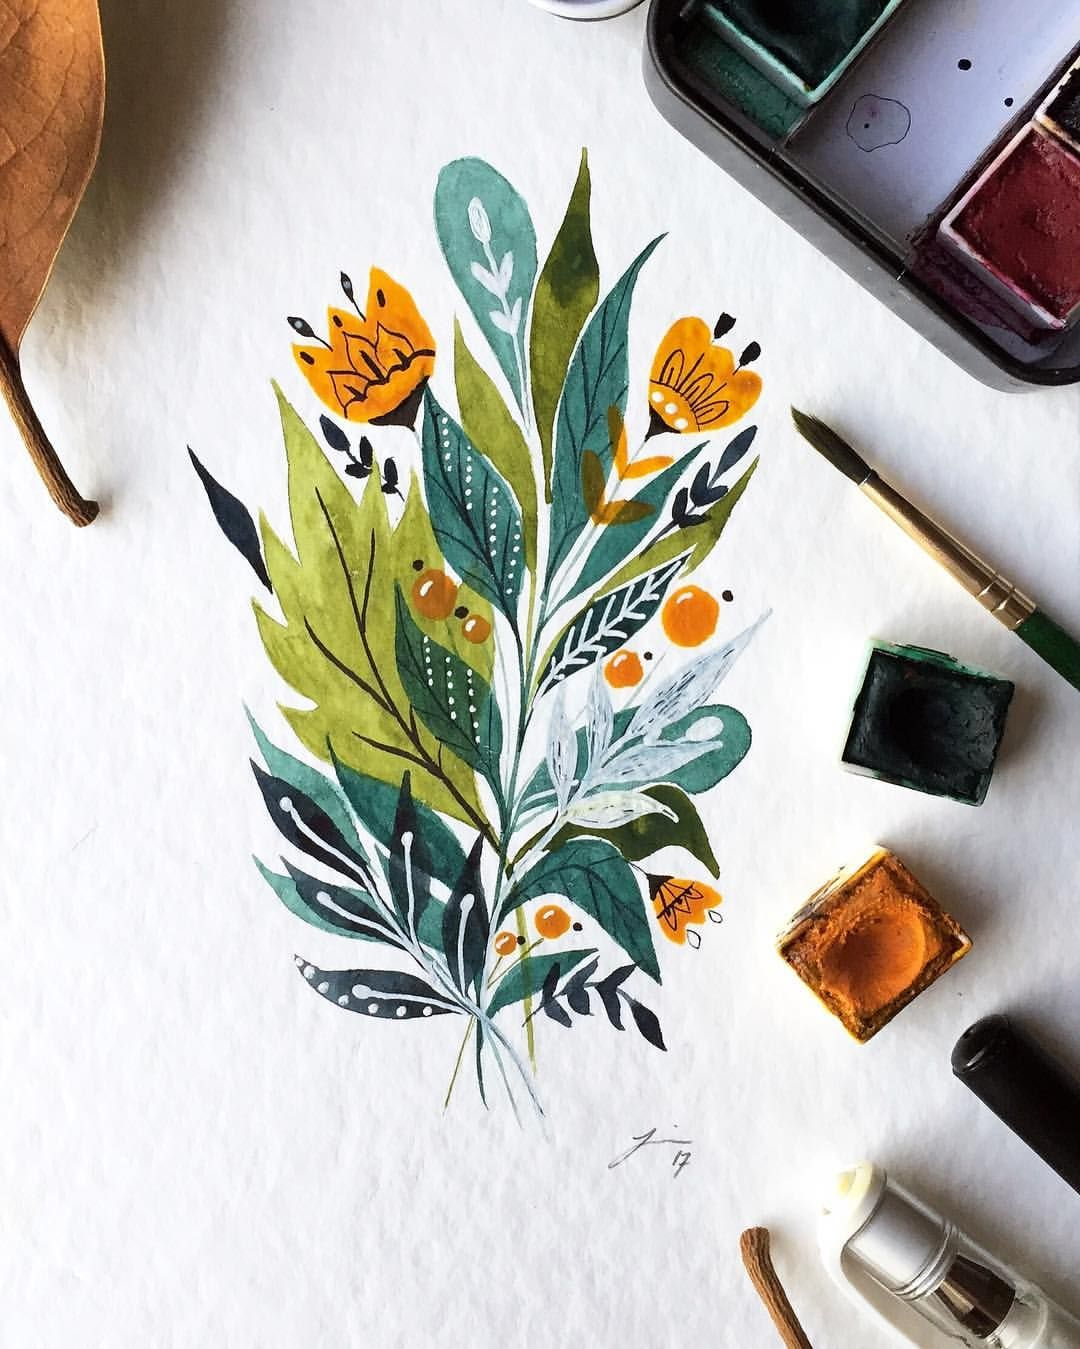 900+ Drawing & Watercolor ideas | drawings, watercolor, art inspiration